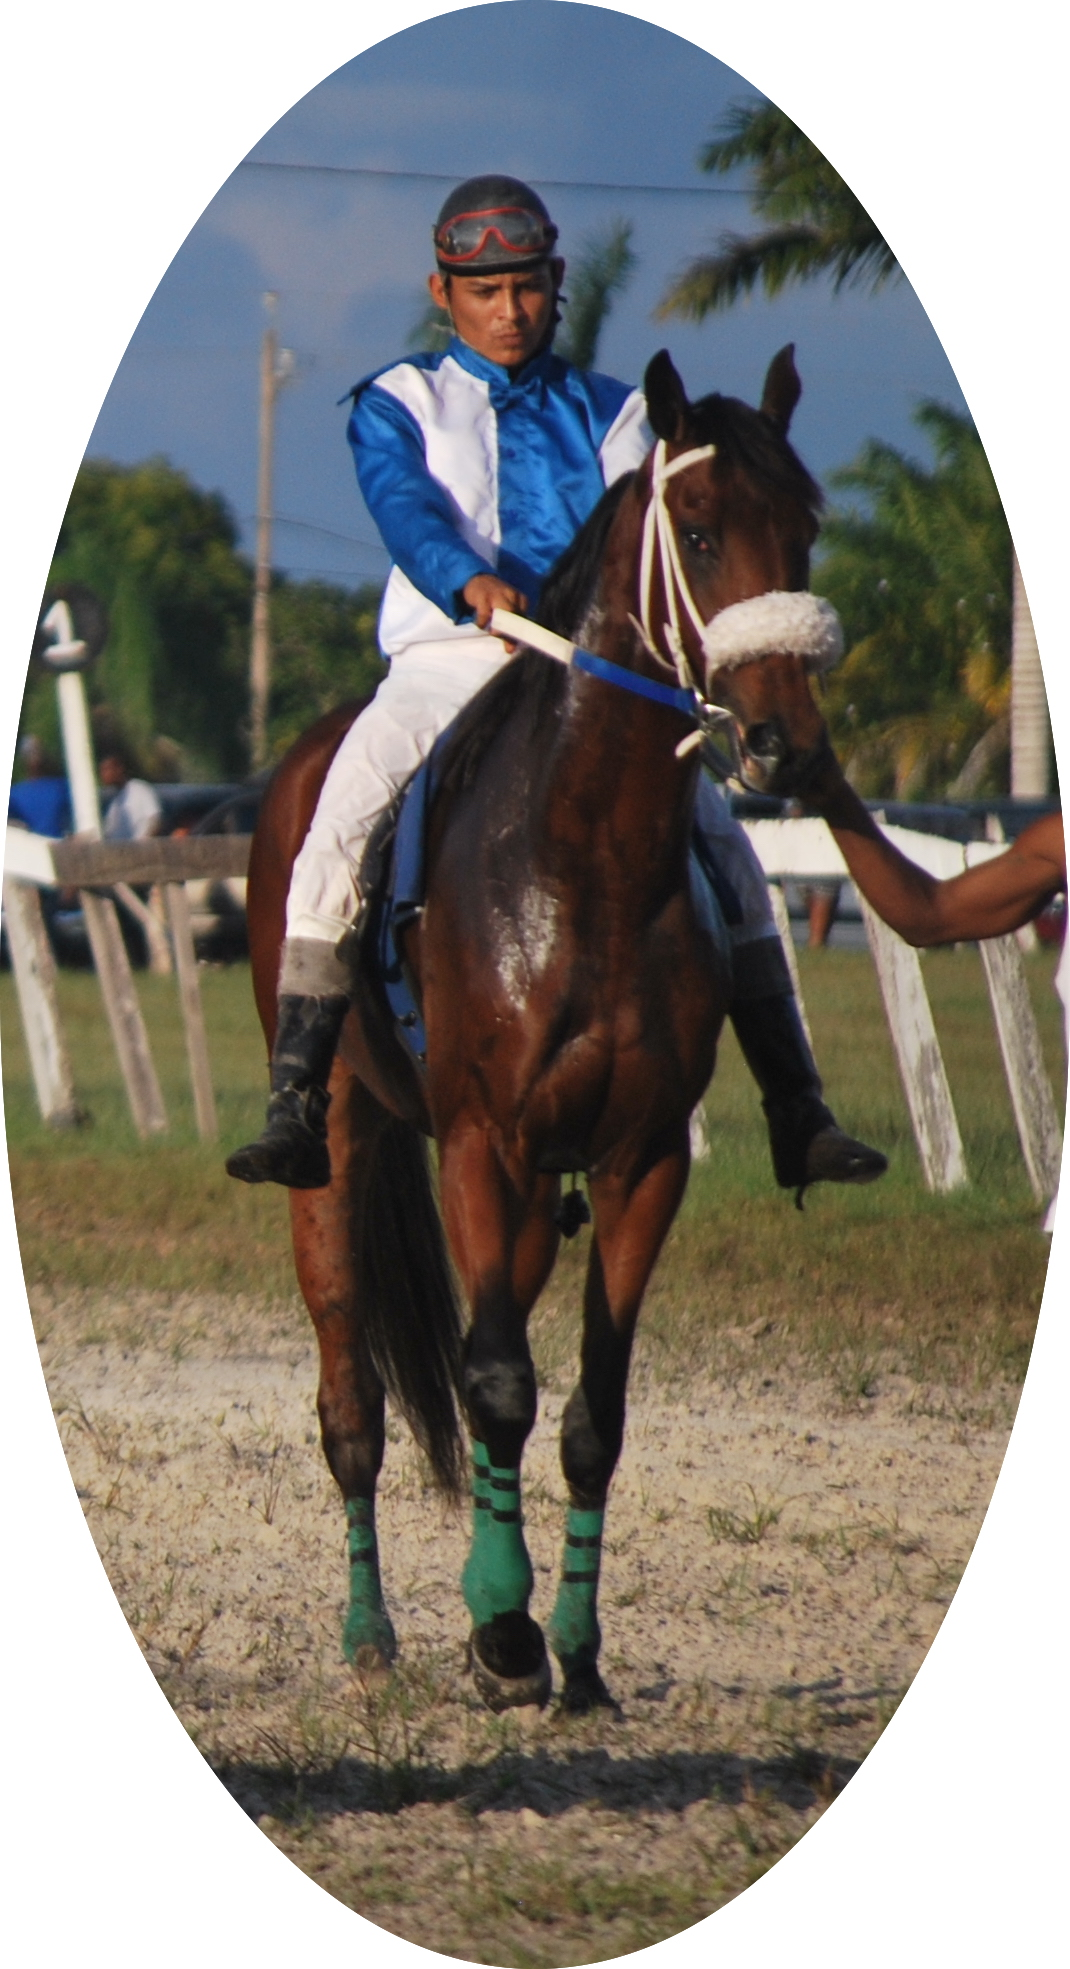 https://horseracingbelize.com/Sir Hilton